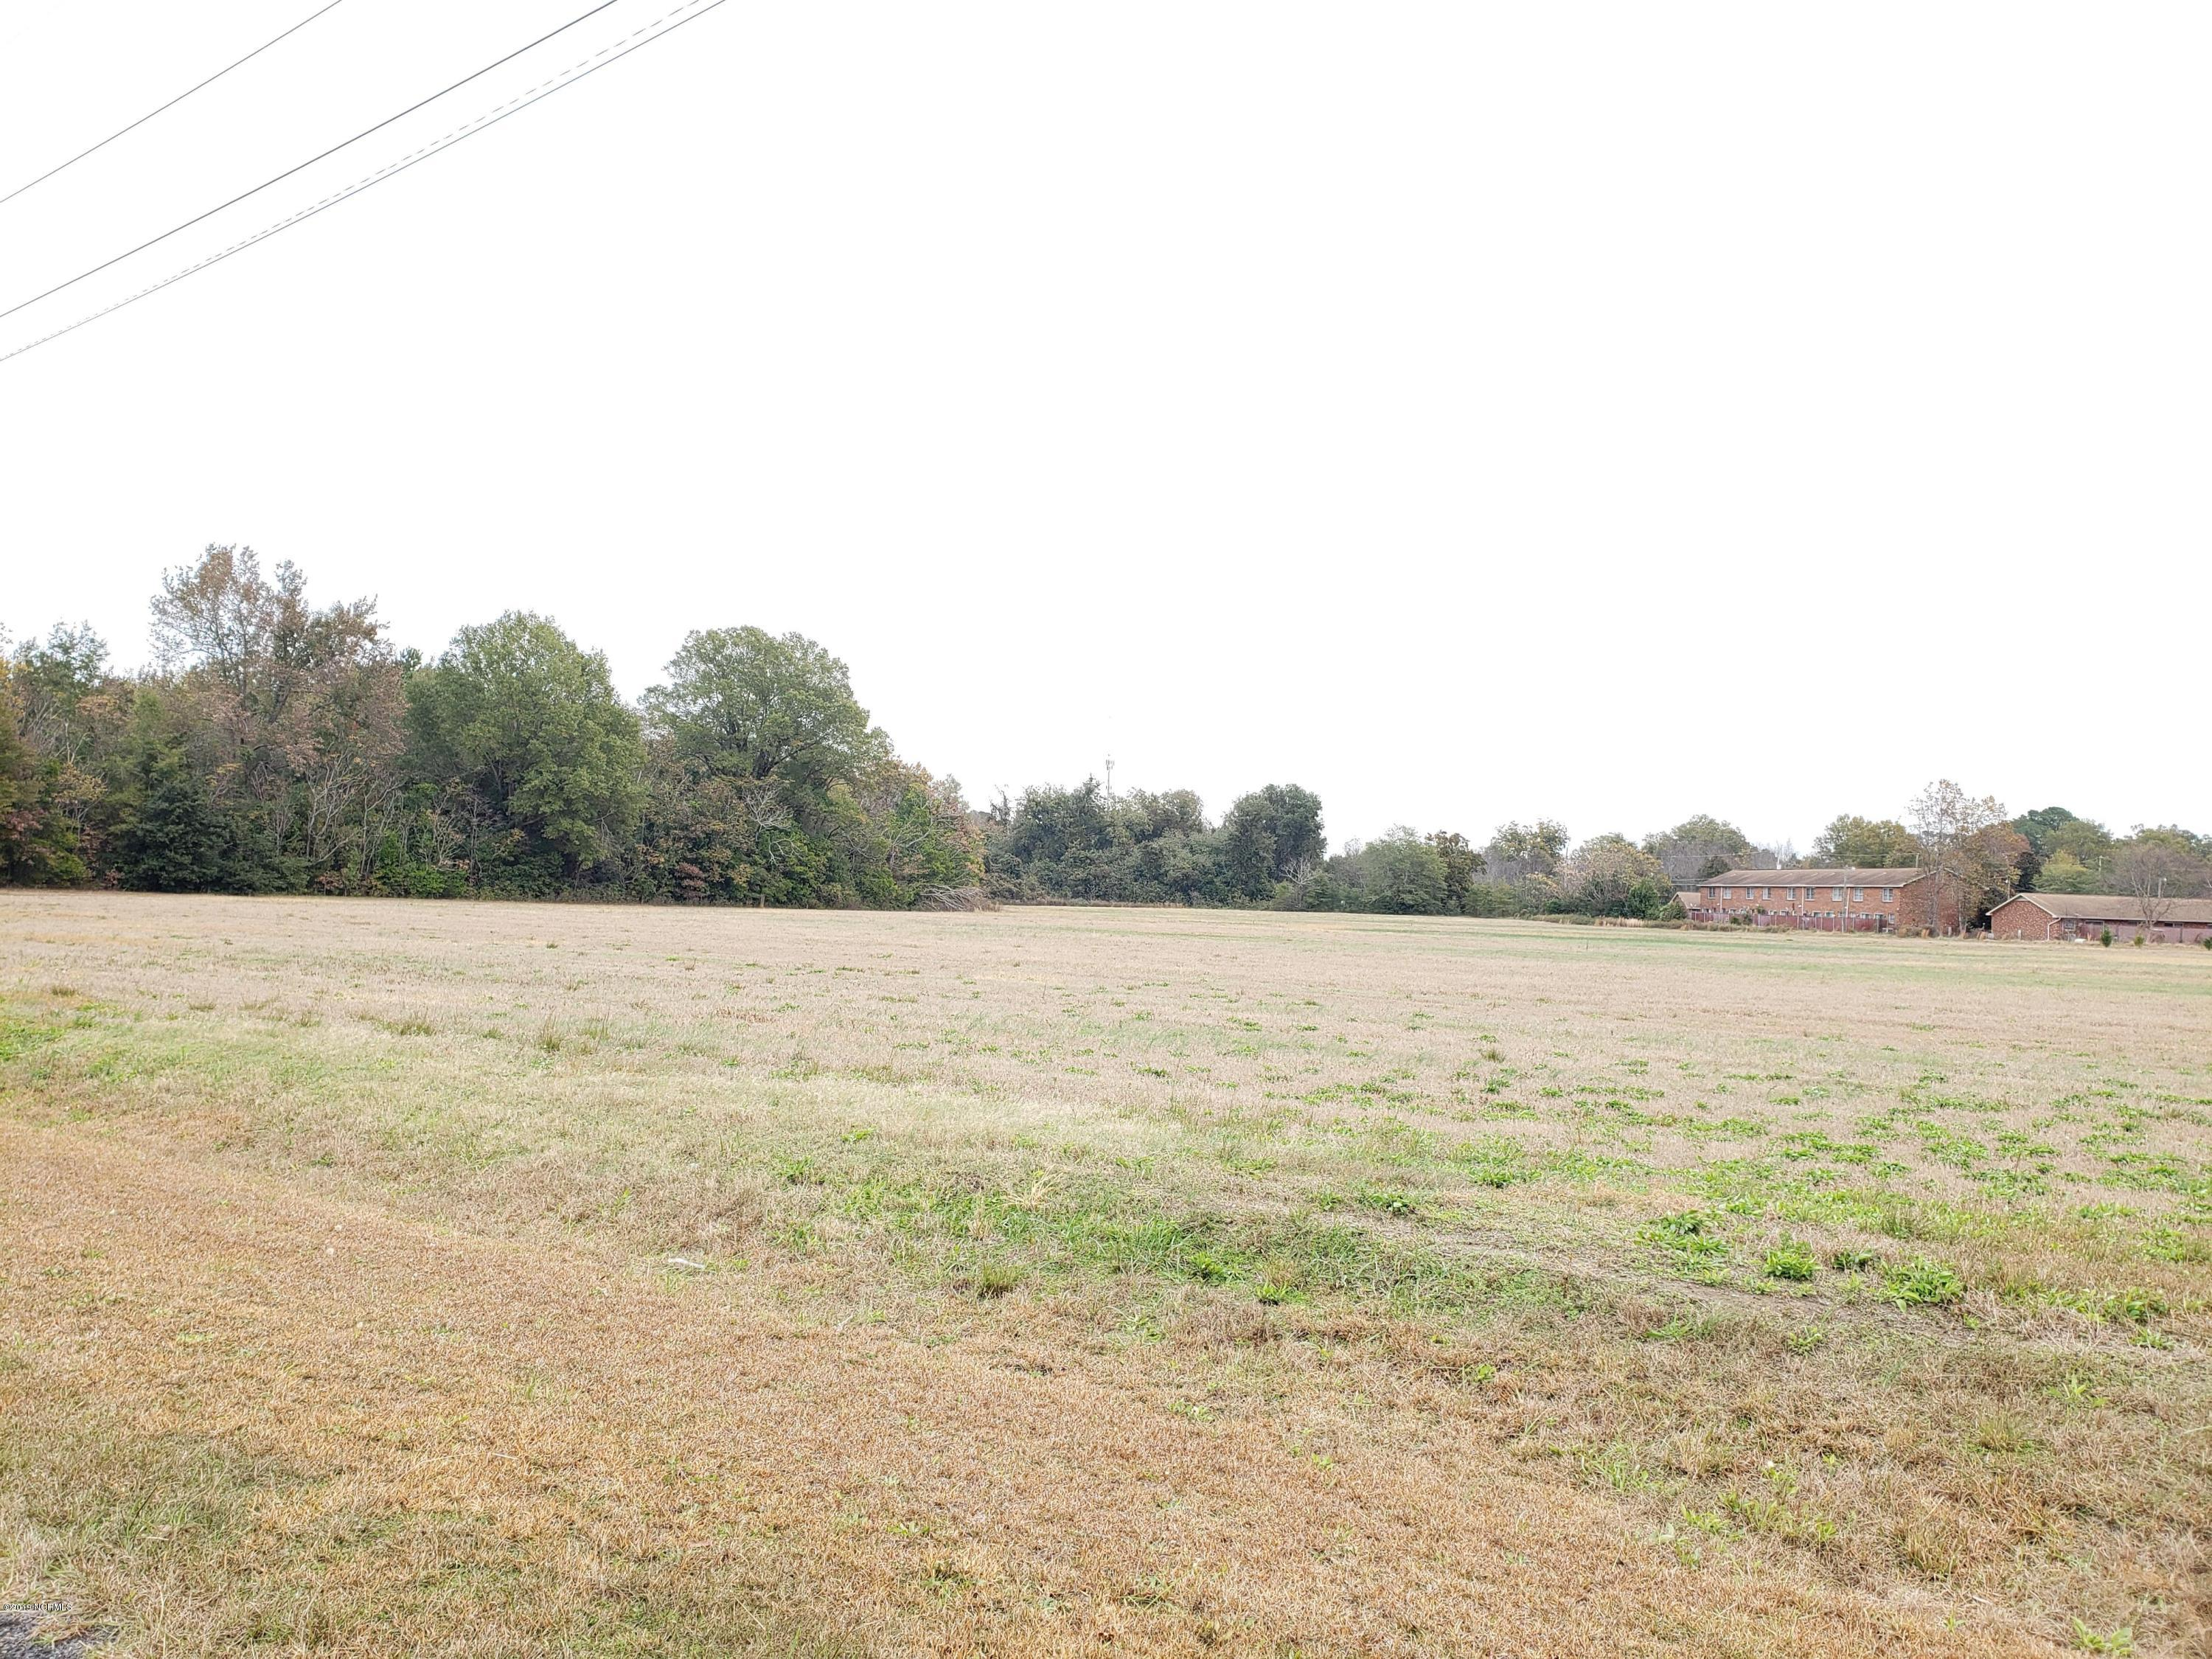 009-02a Wilkinson Drive, Laurinburg, North Carolina 28352, ,Undeveloped,For sale,Wilkinson,100193356